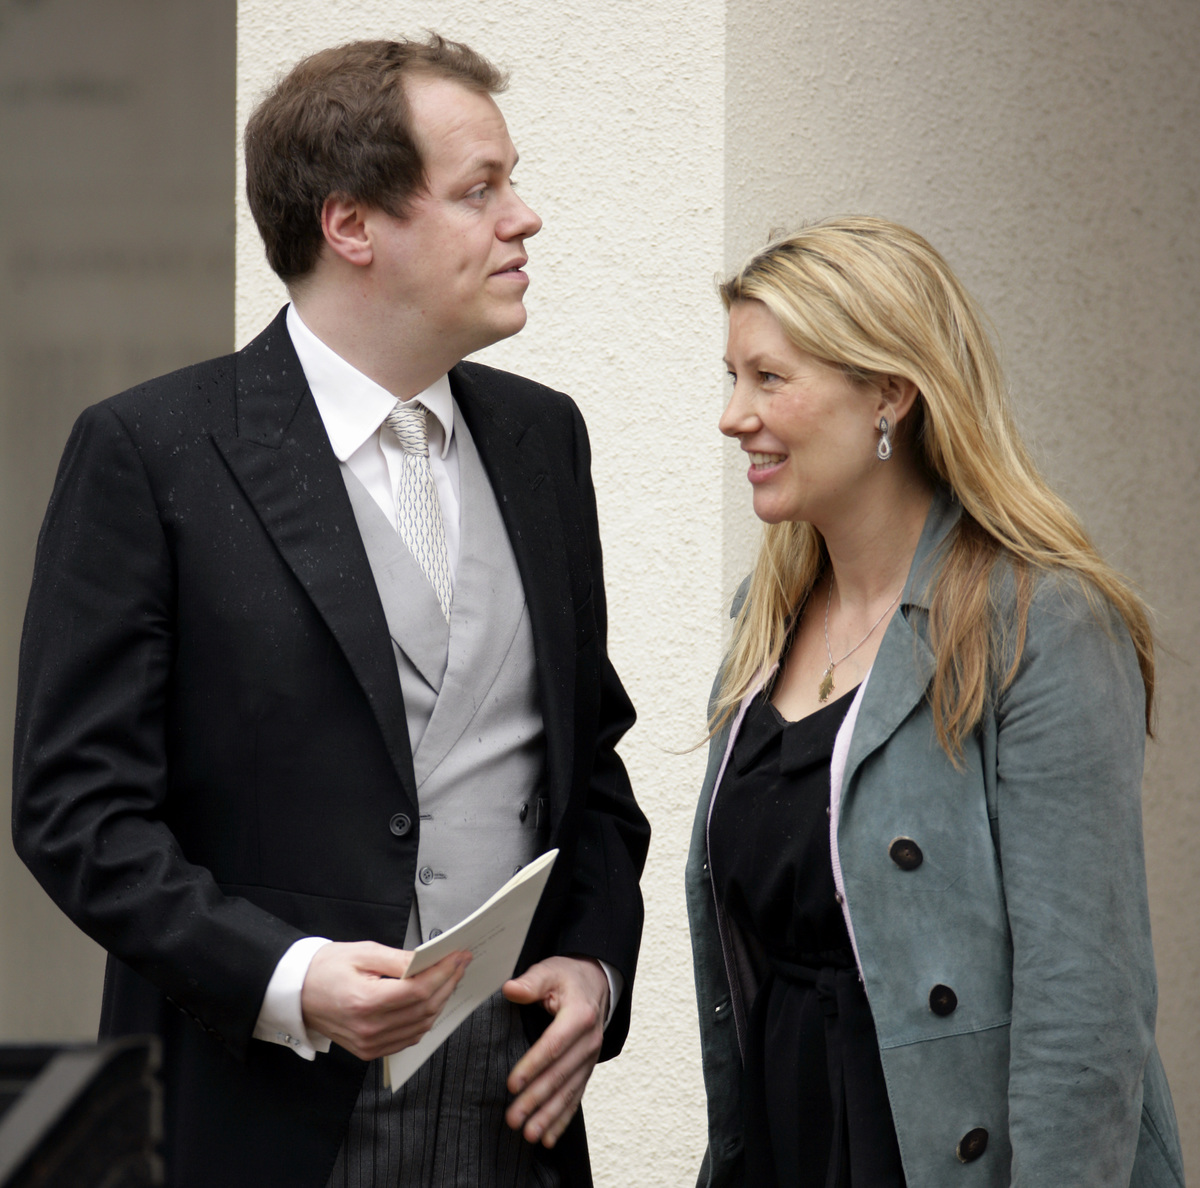 Tom Parker Bowles and wife Sara Parker Bowles (formerly Buys) attend a memorial service for Rosemary Parker Bowles at the Guards Chapel, Wellington Barracks on March 25, 2010 in London, England.